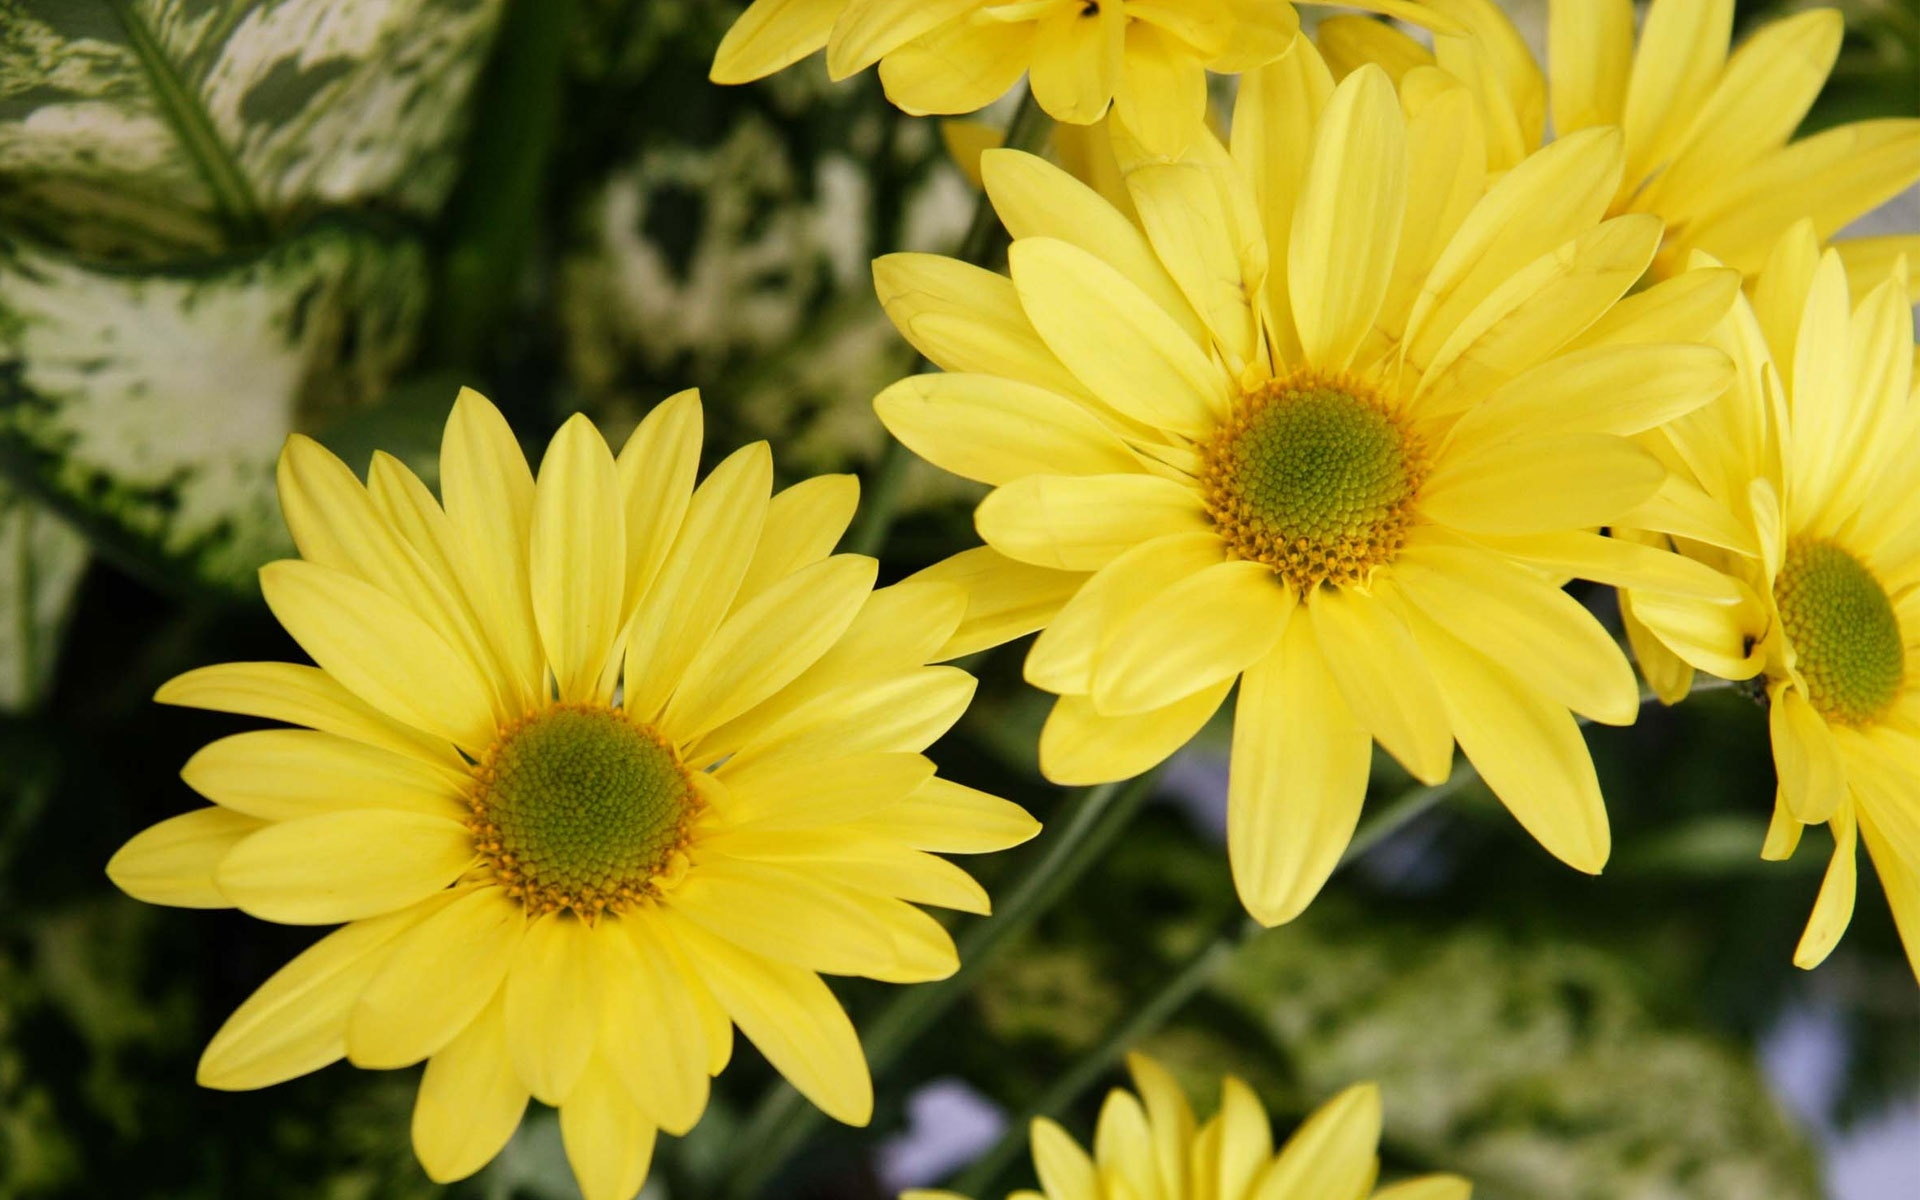 Yellow color flowers wallpapers in jpg format for free download 19201200 mightylinksfo